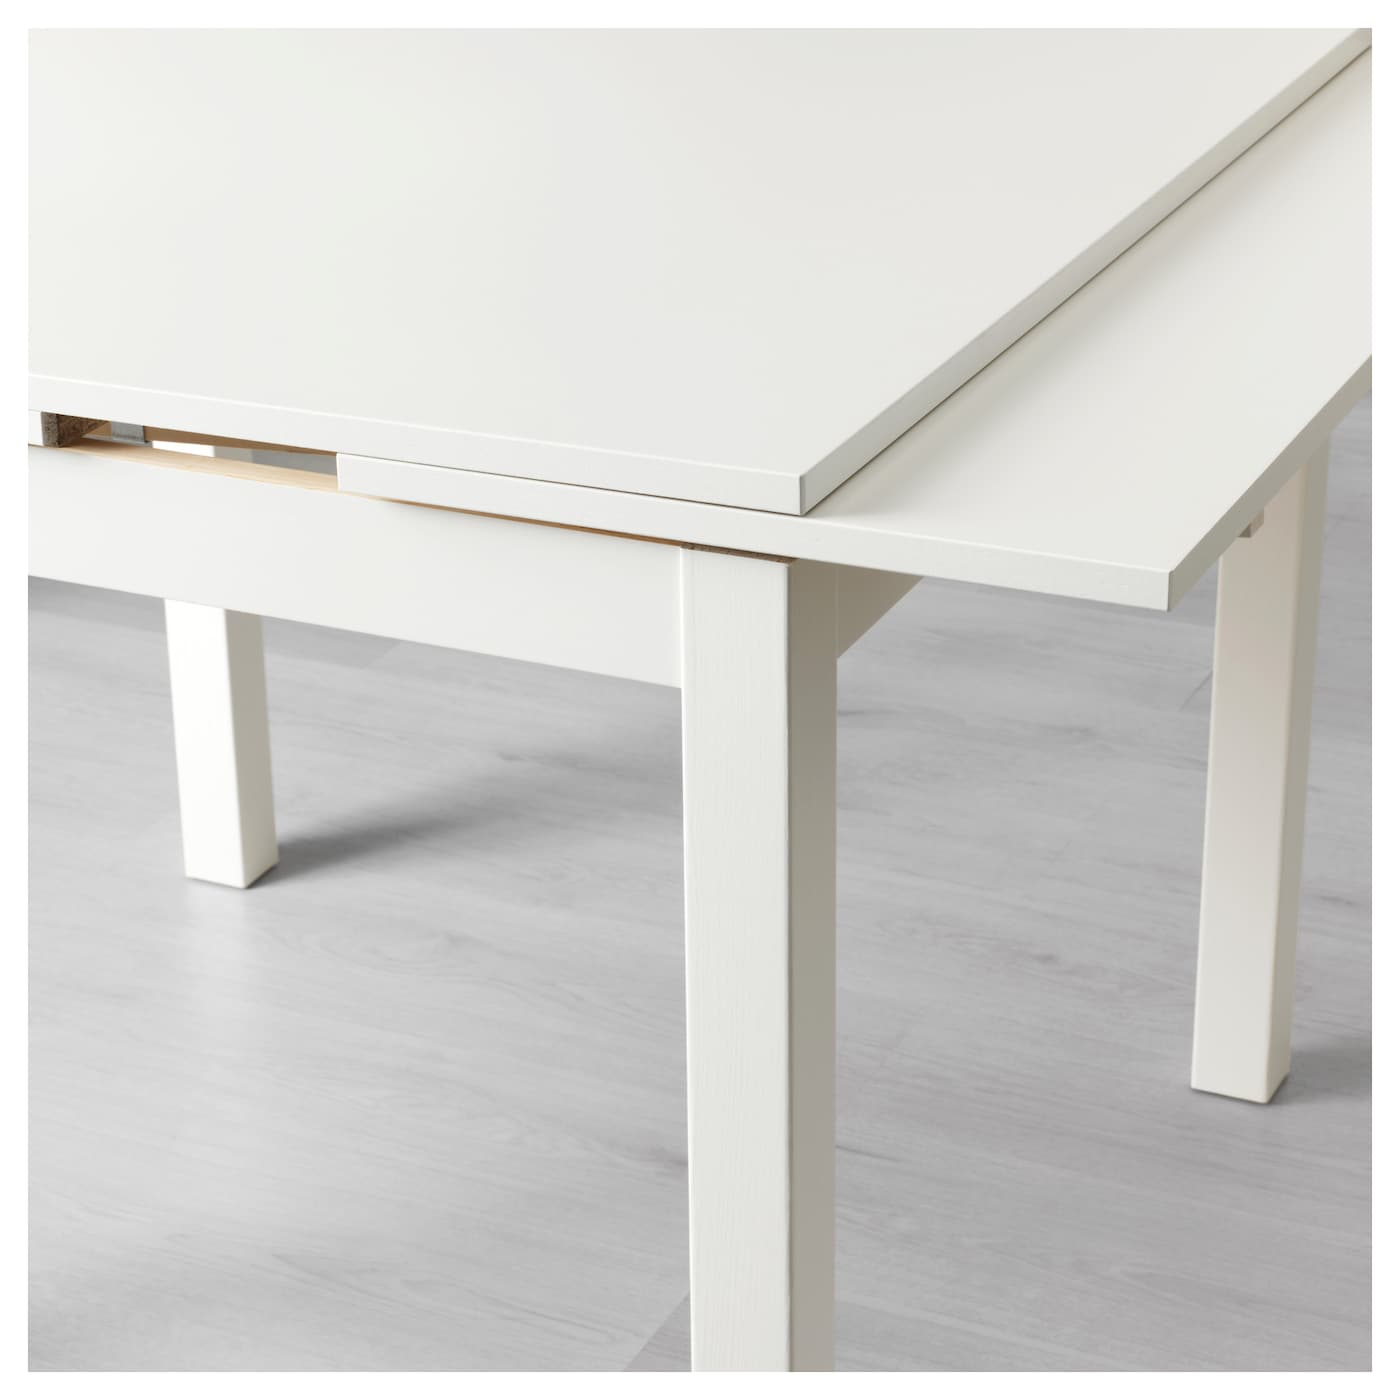 Bjursta extendable table white 90 129 168x90 cm ikea for Table extensible toscana